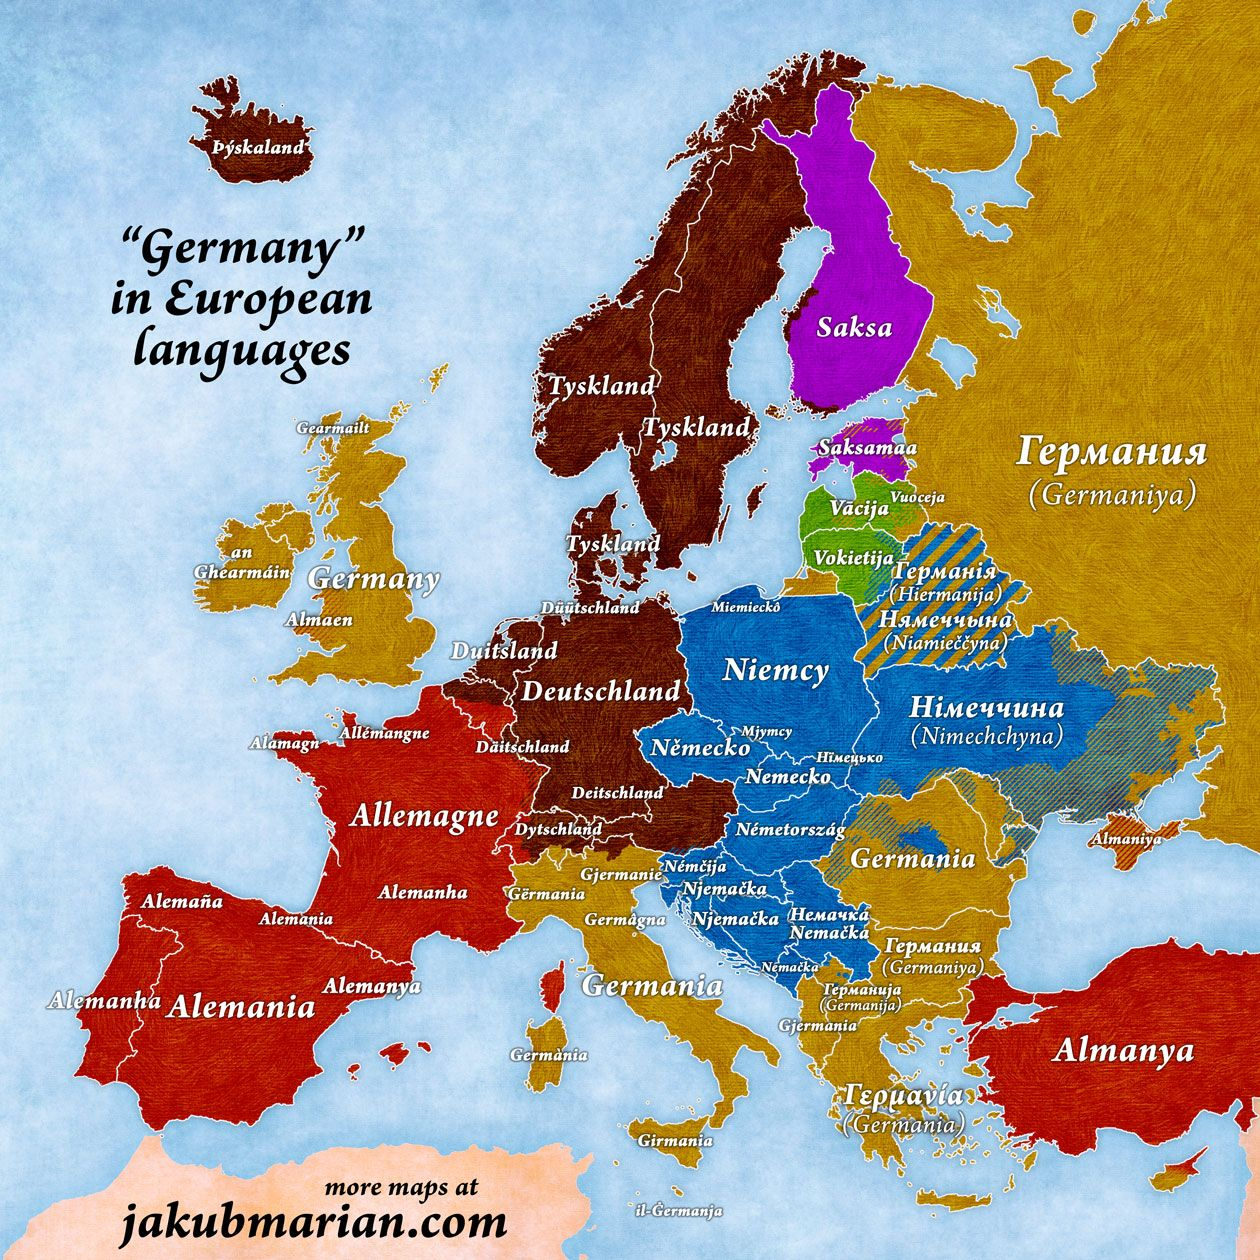 German Map Of Europe Germany in European Languages (With images) | European map